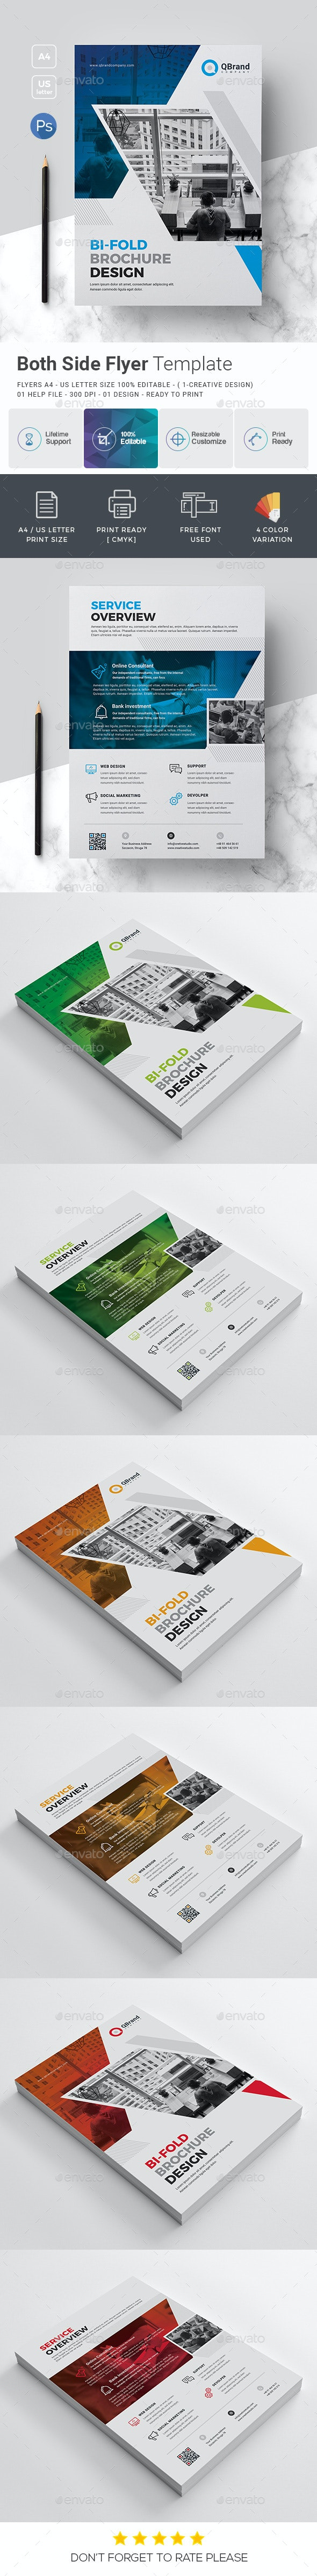 Both Side Corporate Flyer - Corporate Flyers